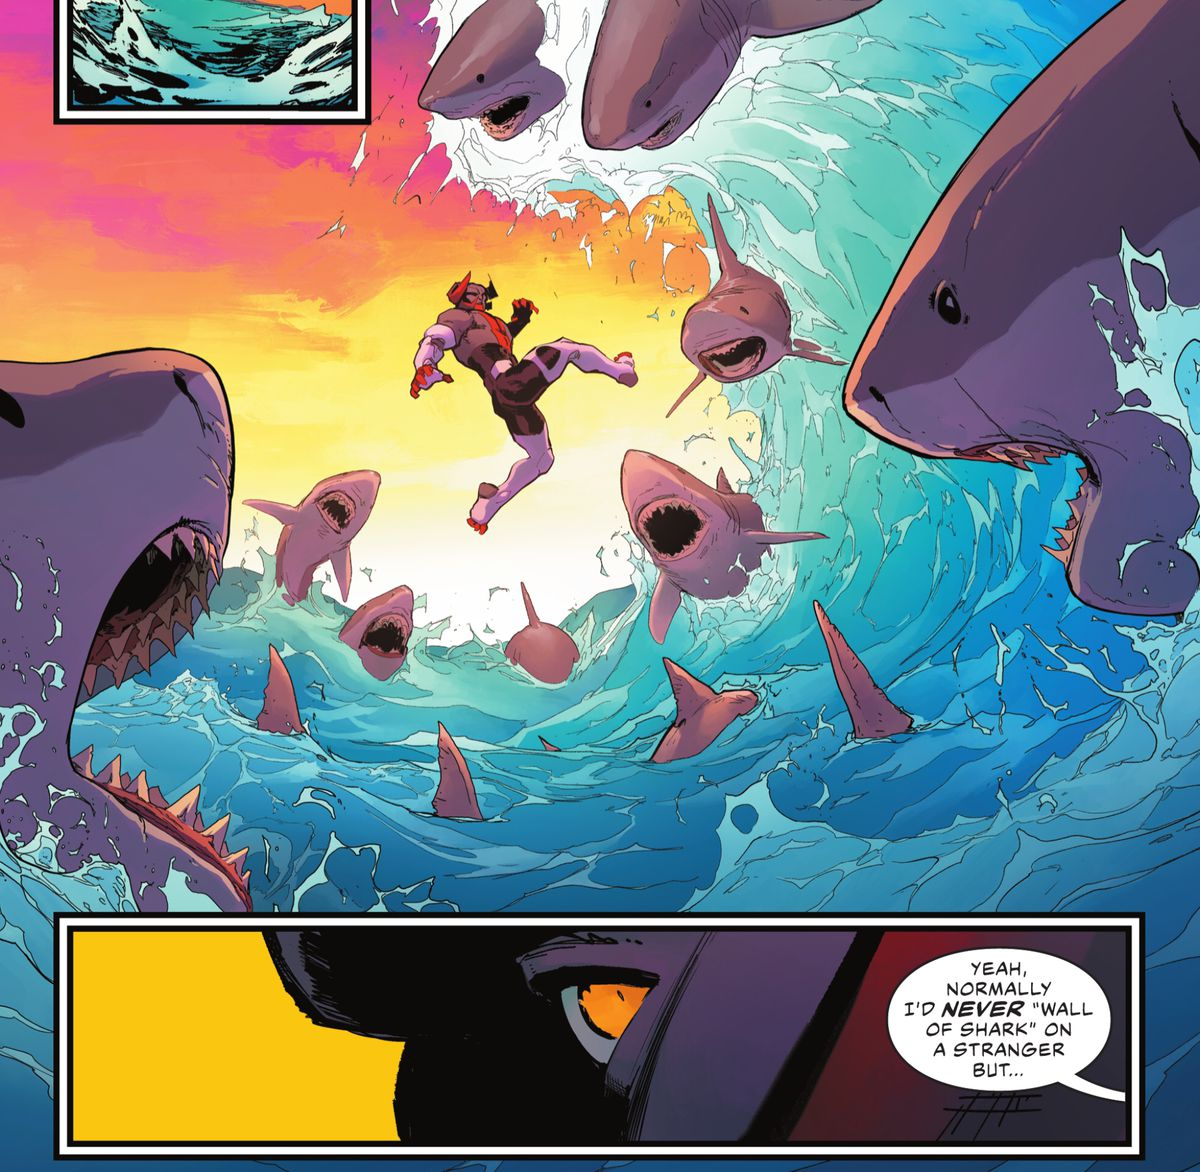 """A horned bad guy looks up in alarm as he realizes a giant wave is about to crash on him, and that wave is full of sharks. """"Yeah, normally I'd never 'wall of shark' on a stranger but..."""" says Aquaman, in Justice League #59, DC Comics (2021)."""